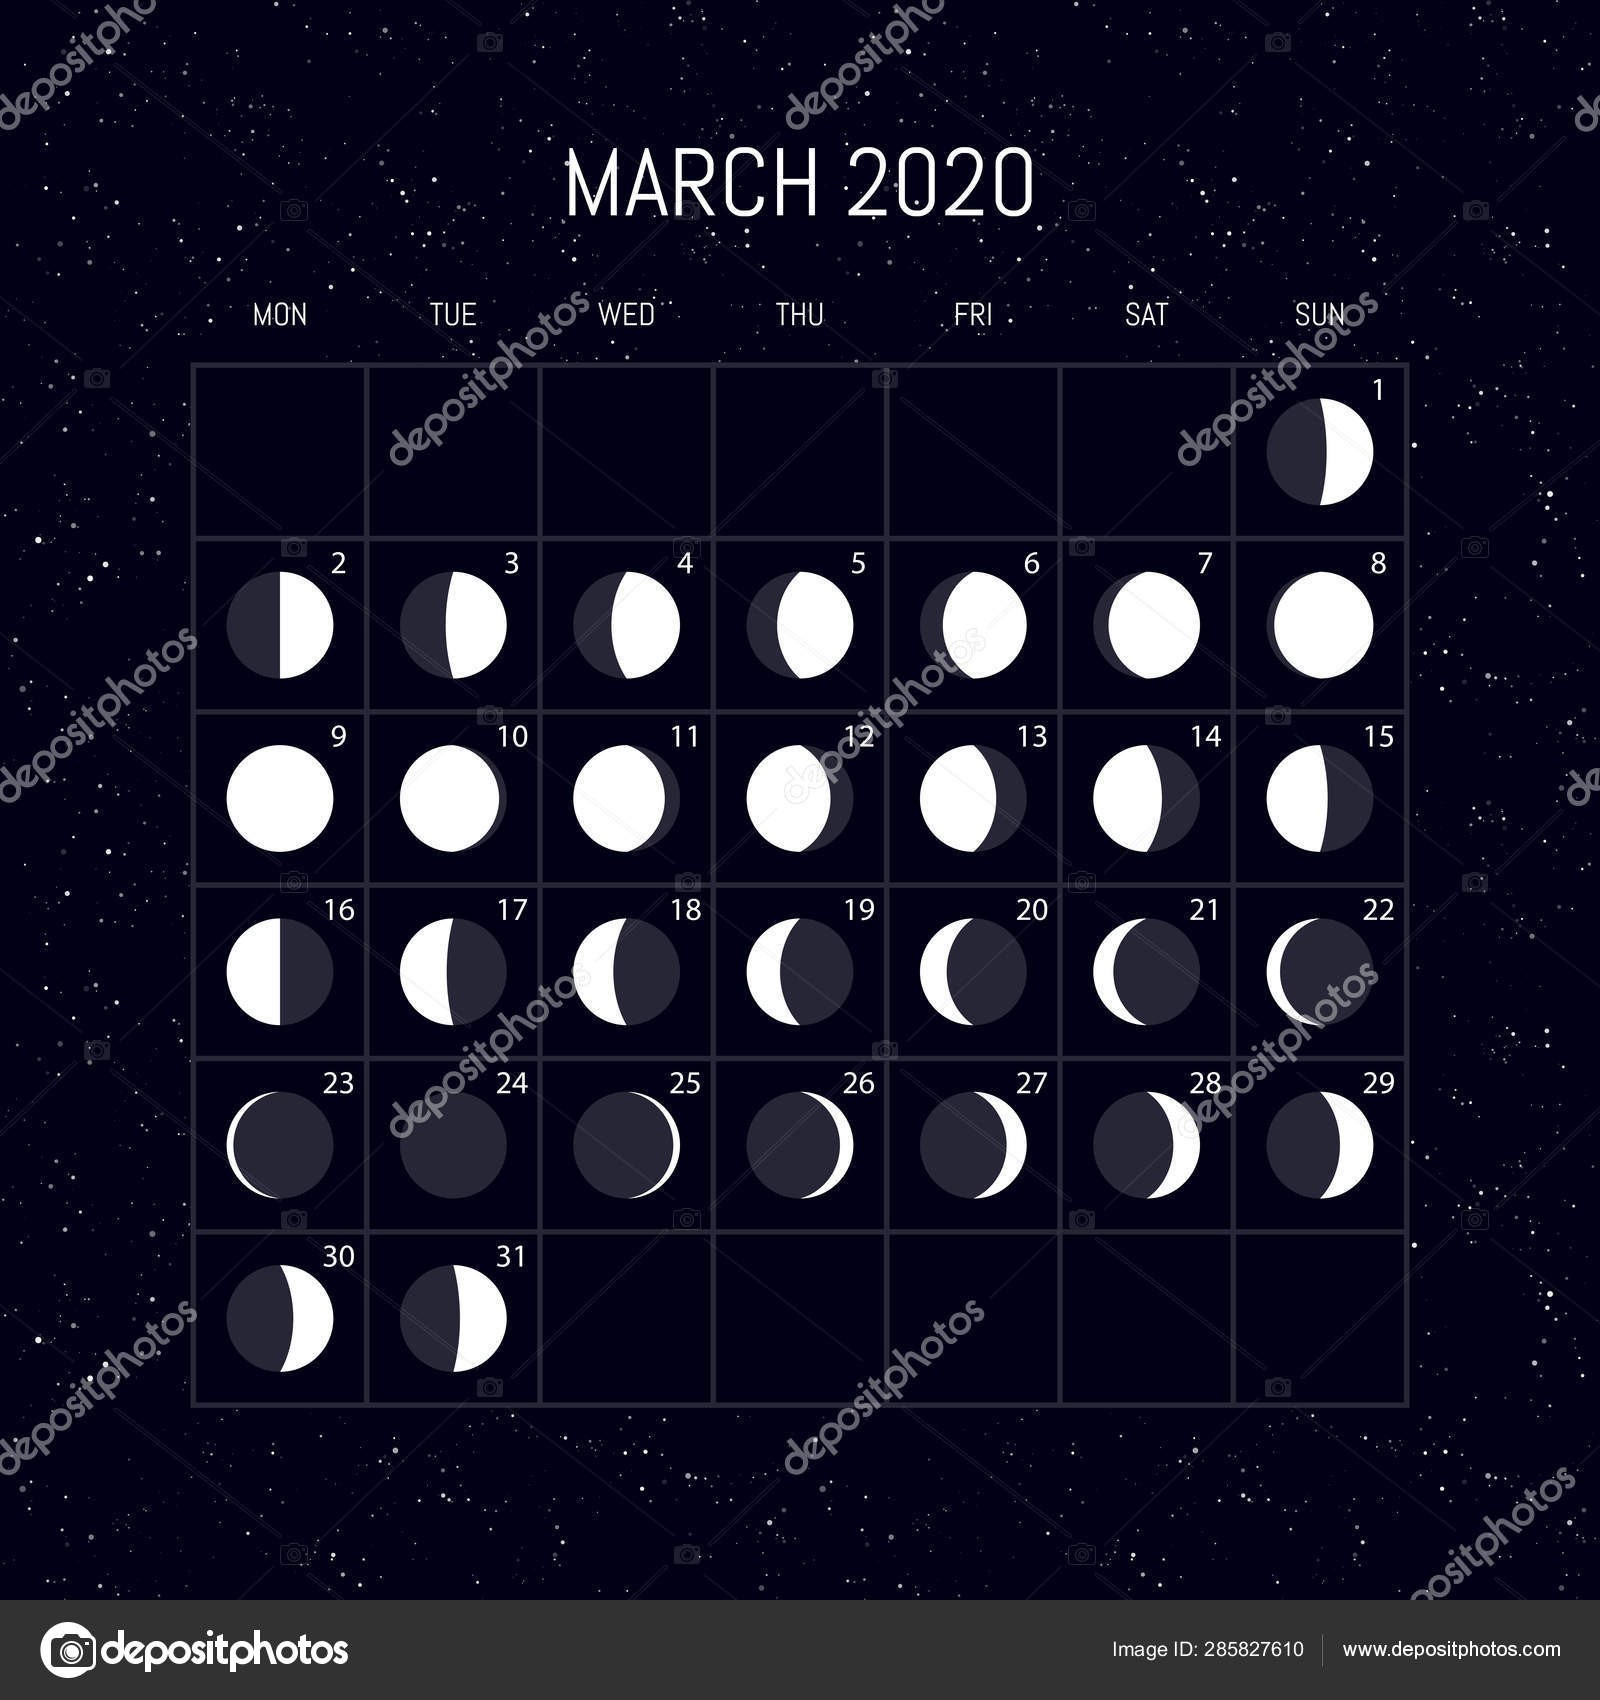 depositphotos stock illustration moon phases calendar for 2020